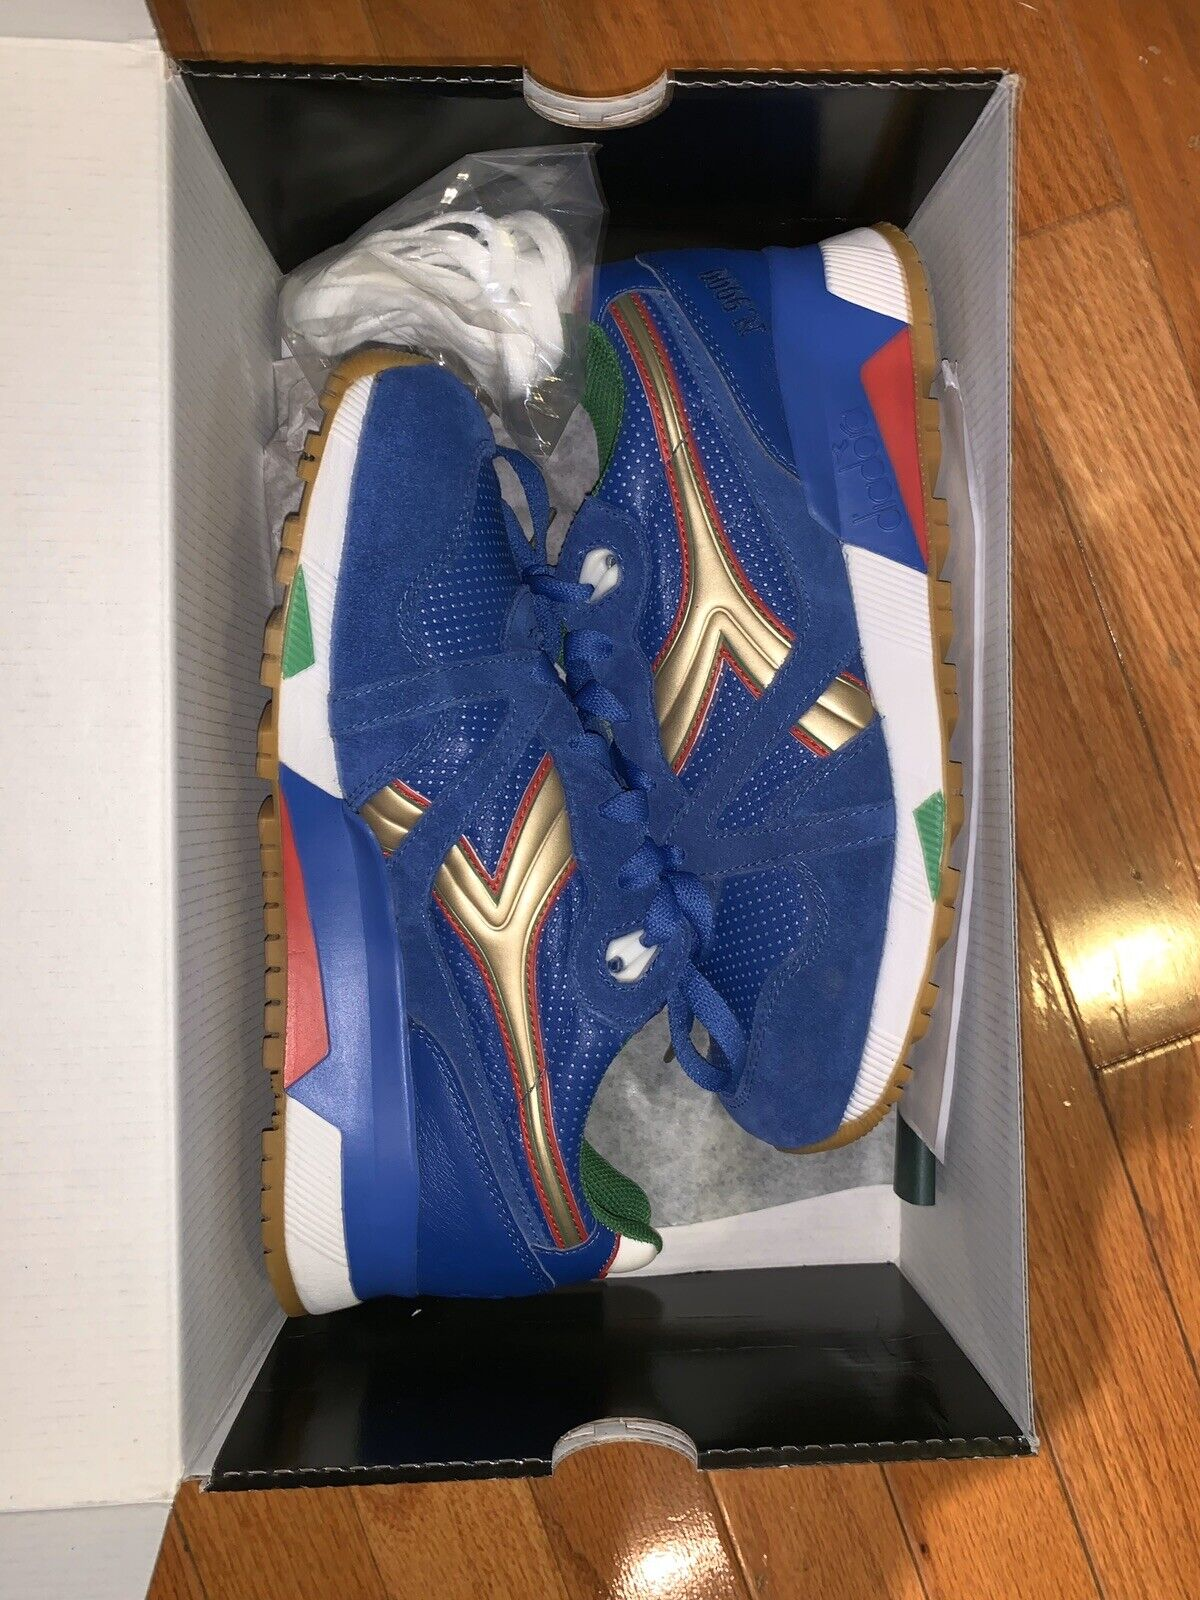 Diadora x Packer Shoes N9000 Azzurri Size 7.5 Olympian Blue Made in Italy